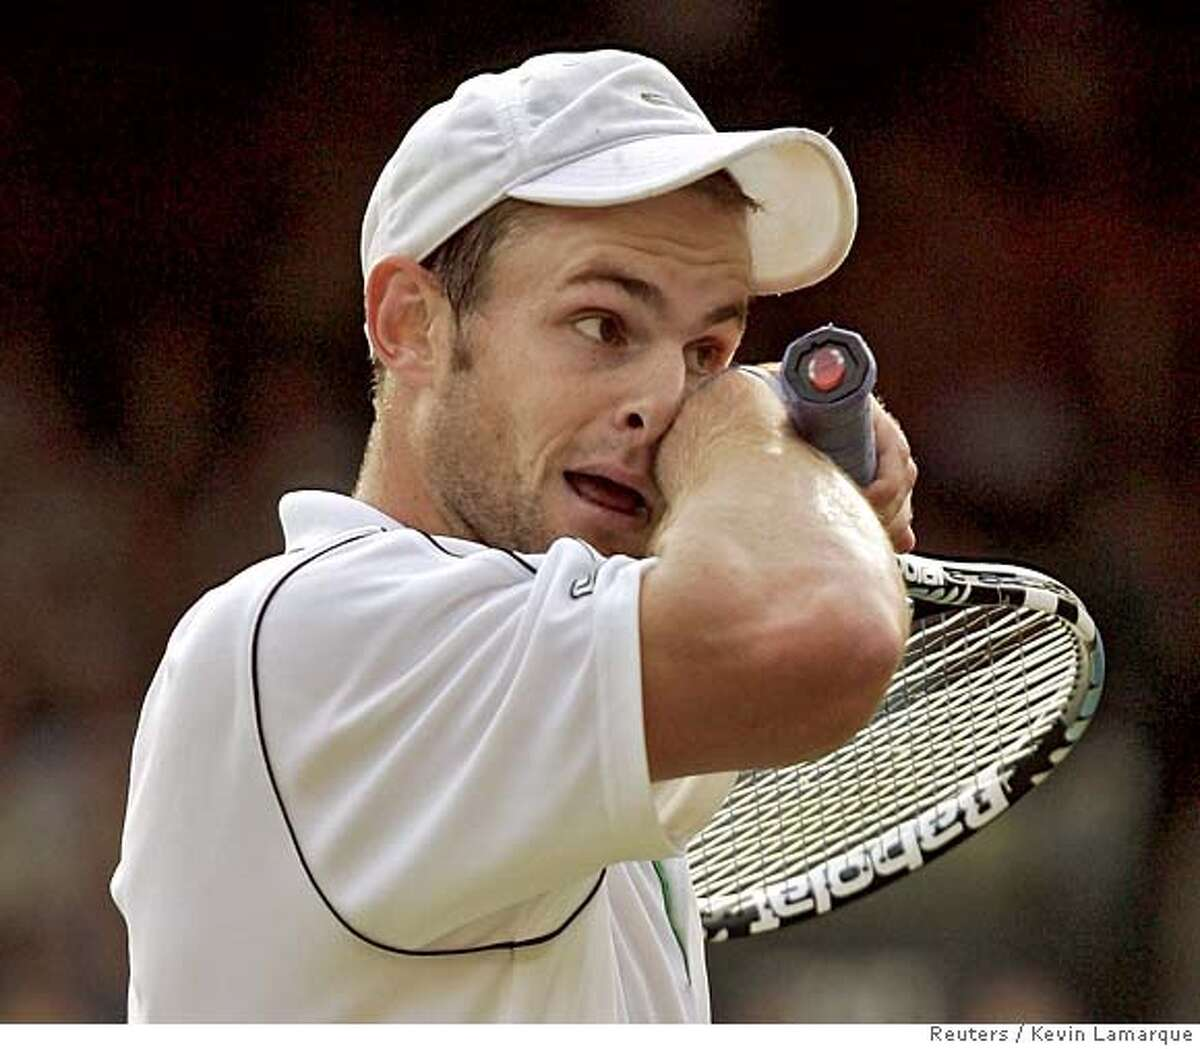 Roddick of US reacts during his match with Britain's Murray at Wimbledon tennis championships in London